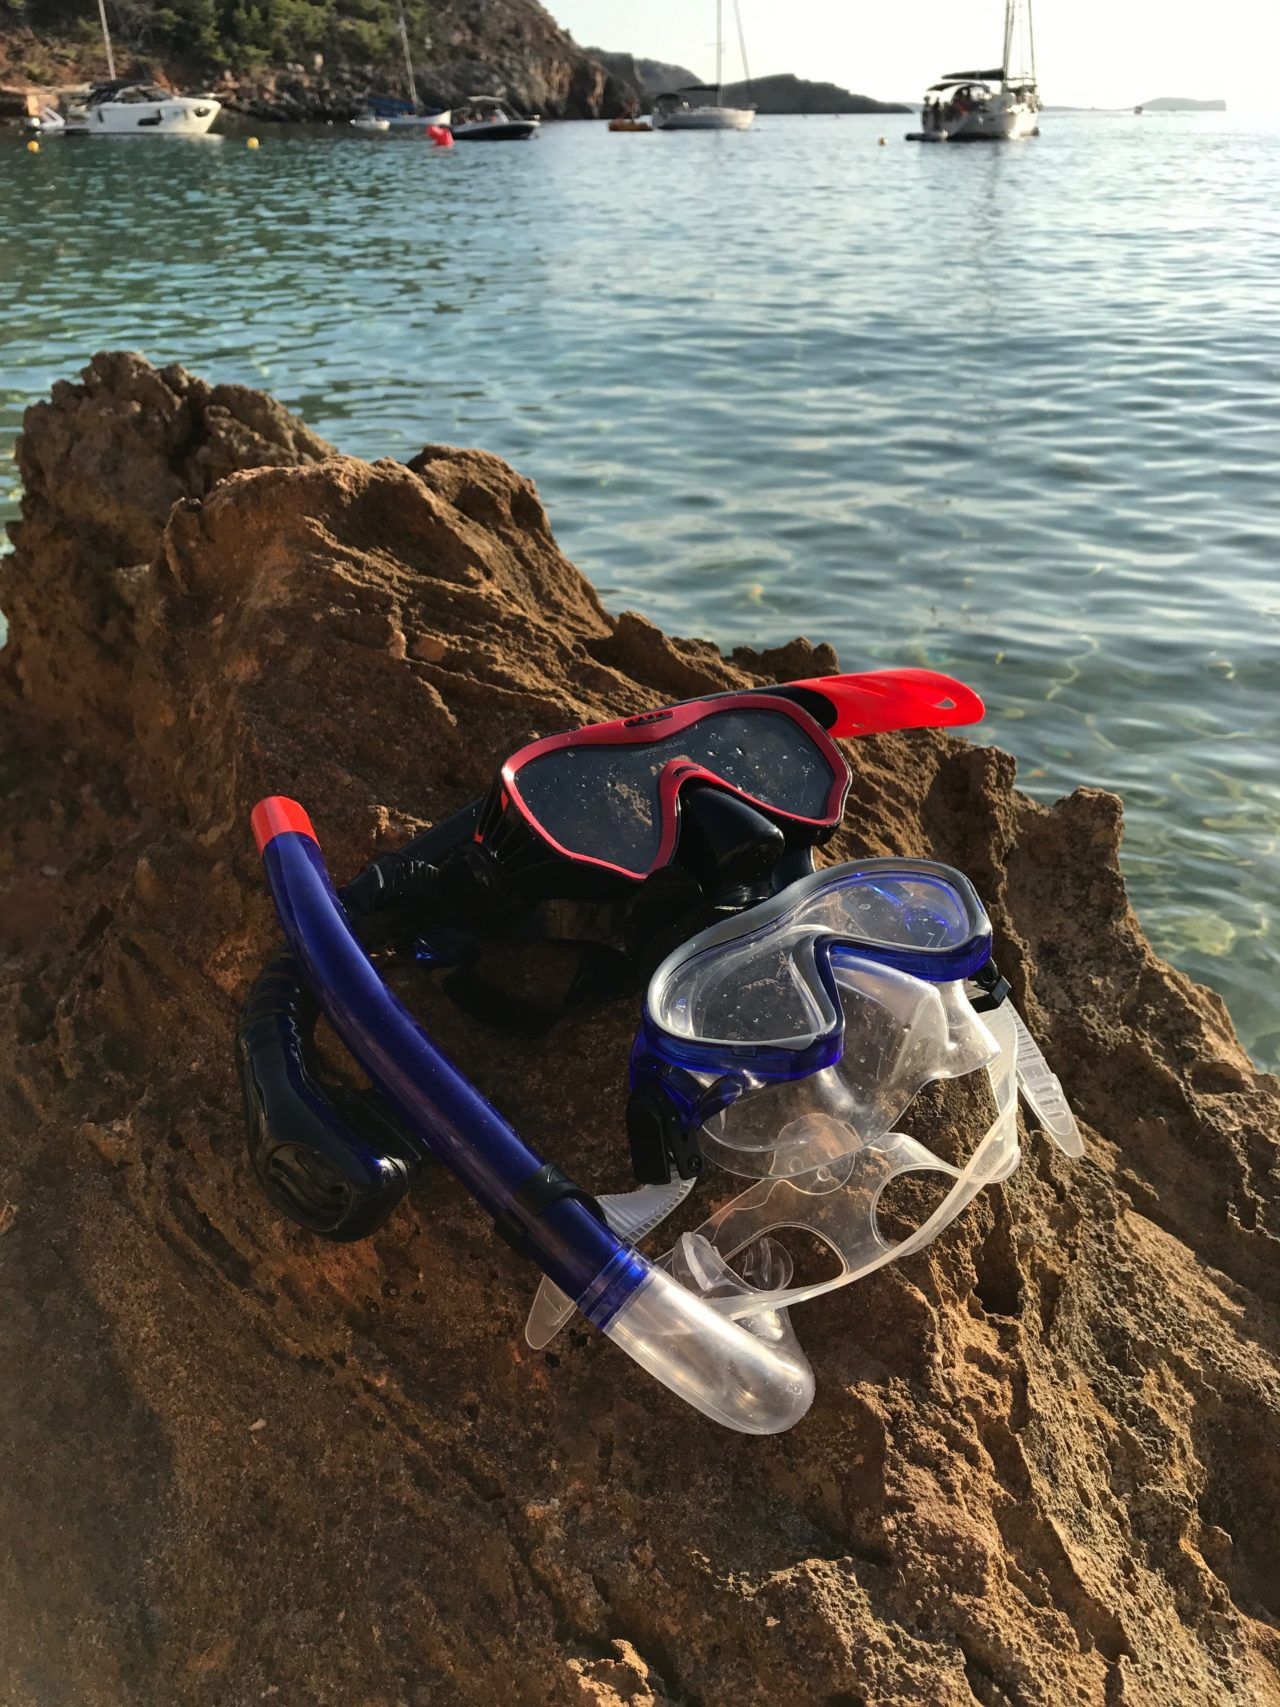 Snorkeling Gear On A Cliff By The Ocean With Boats